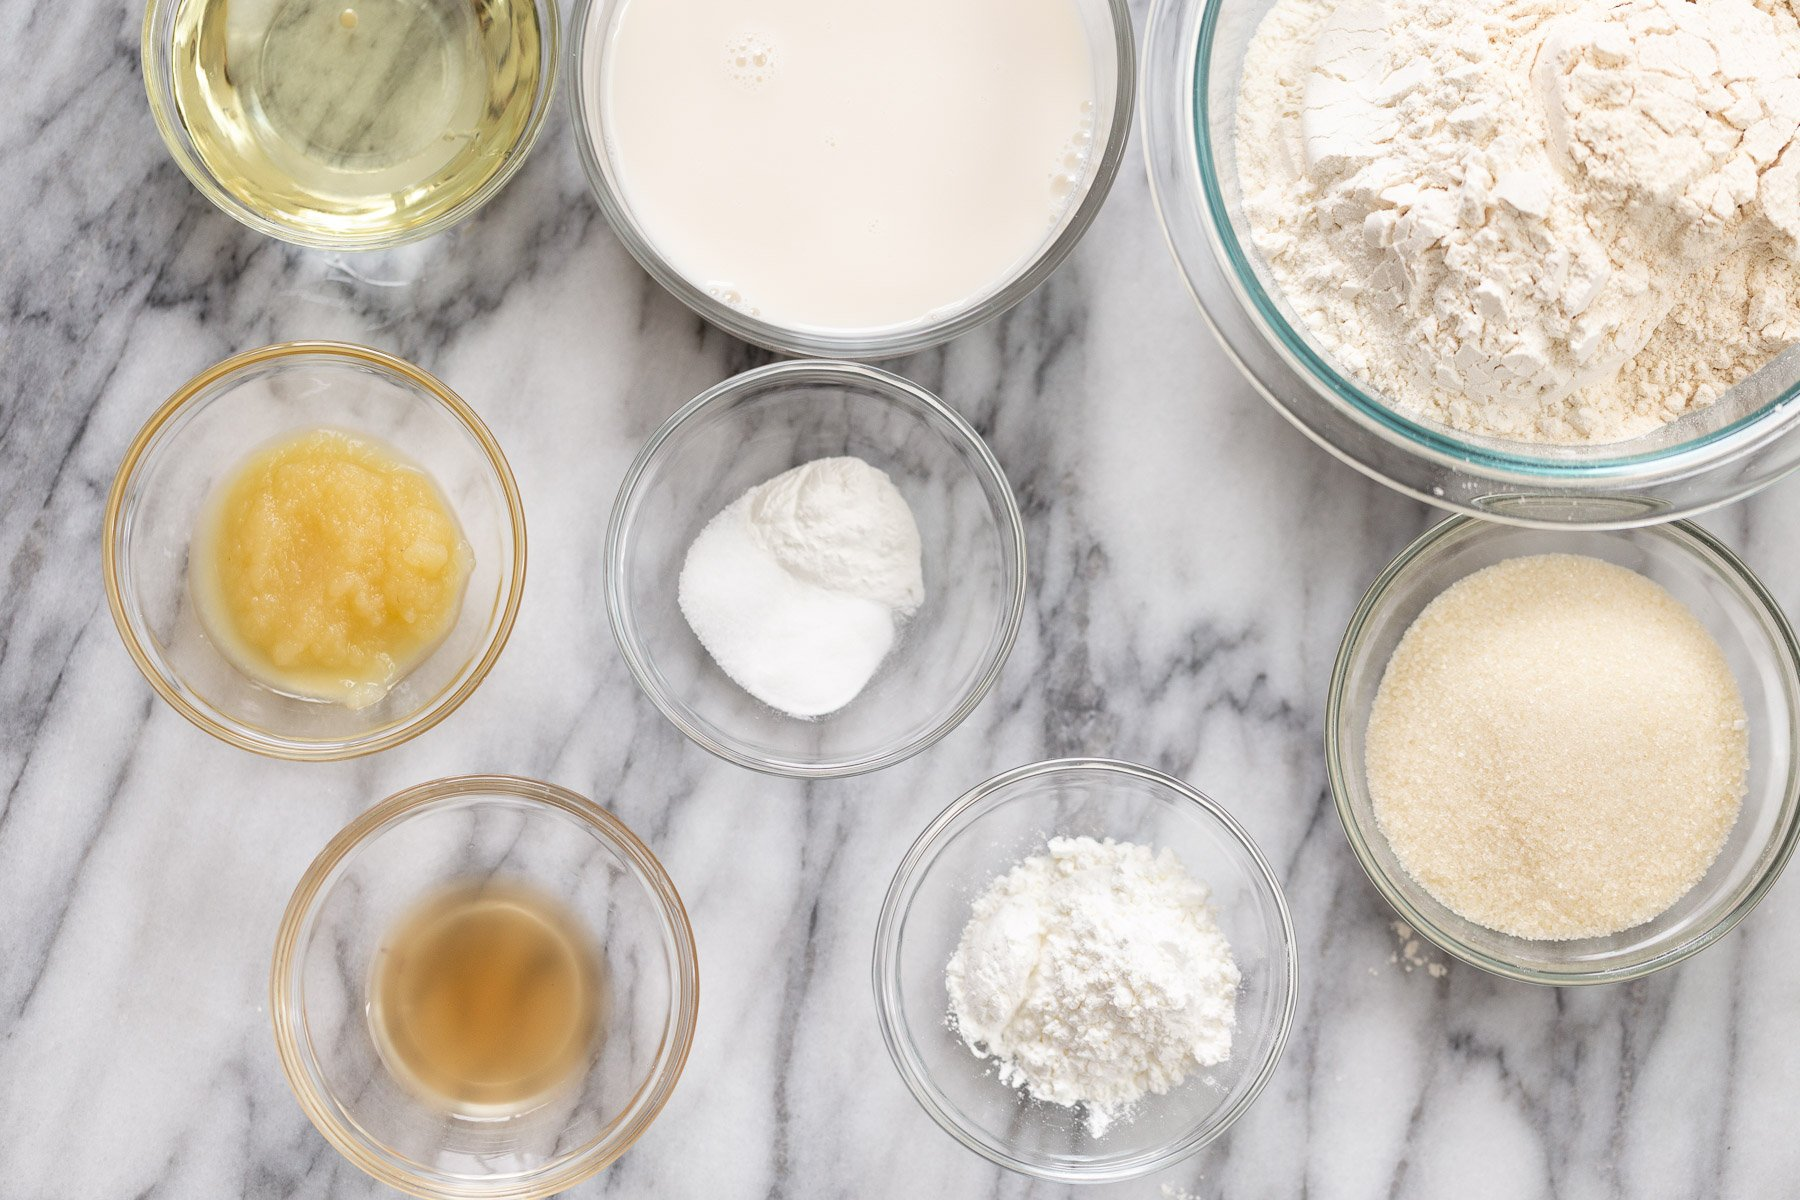 ingredients for making vegan white cake on a marble kitchen counter